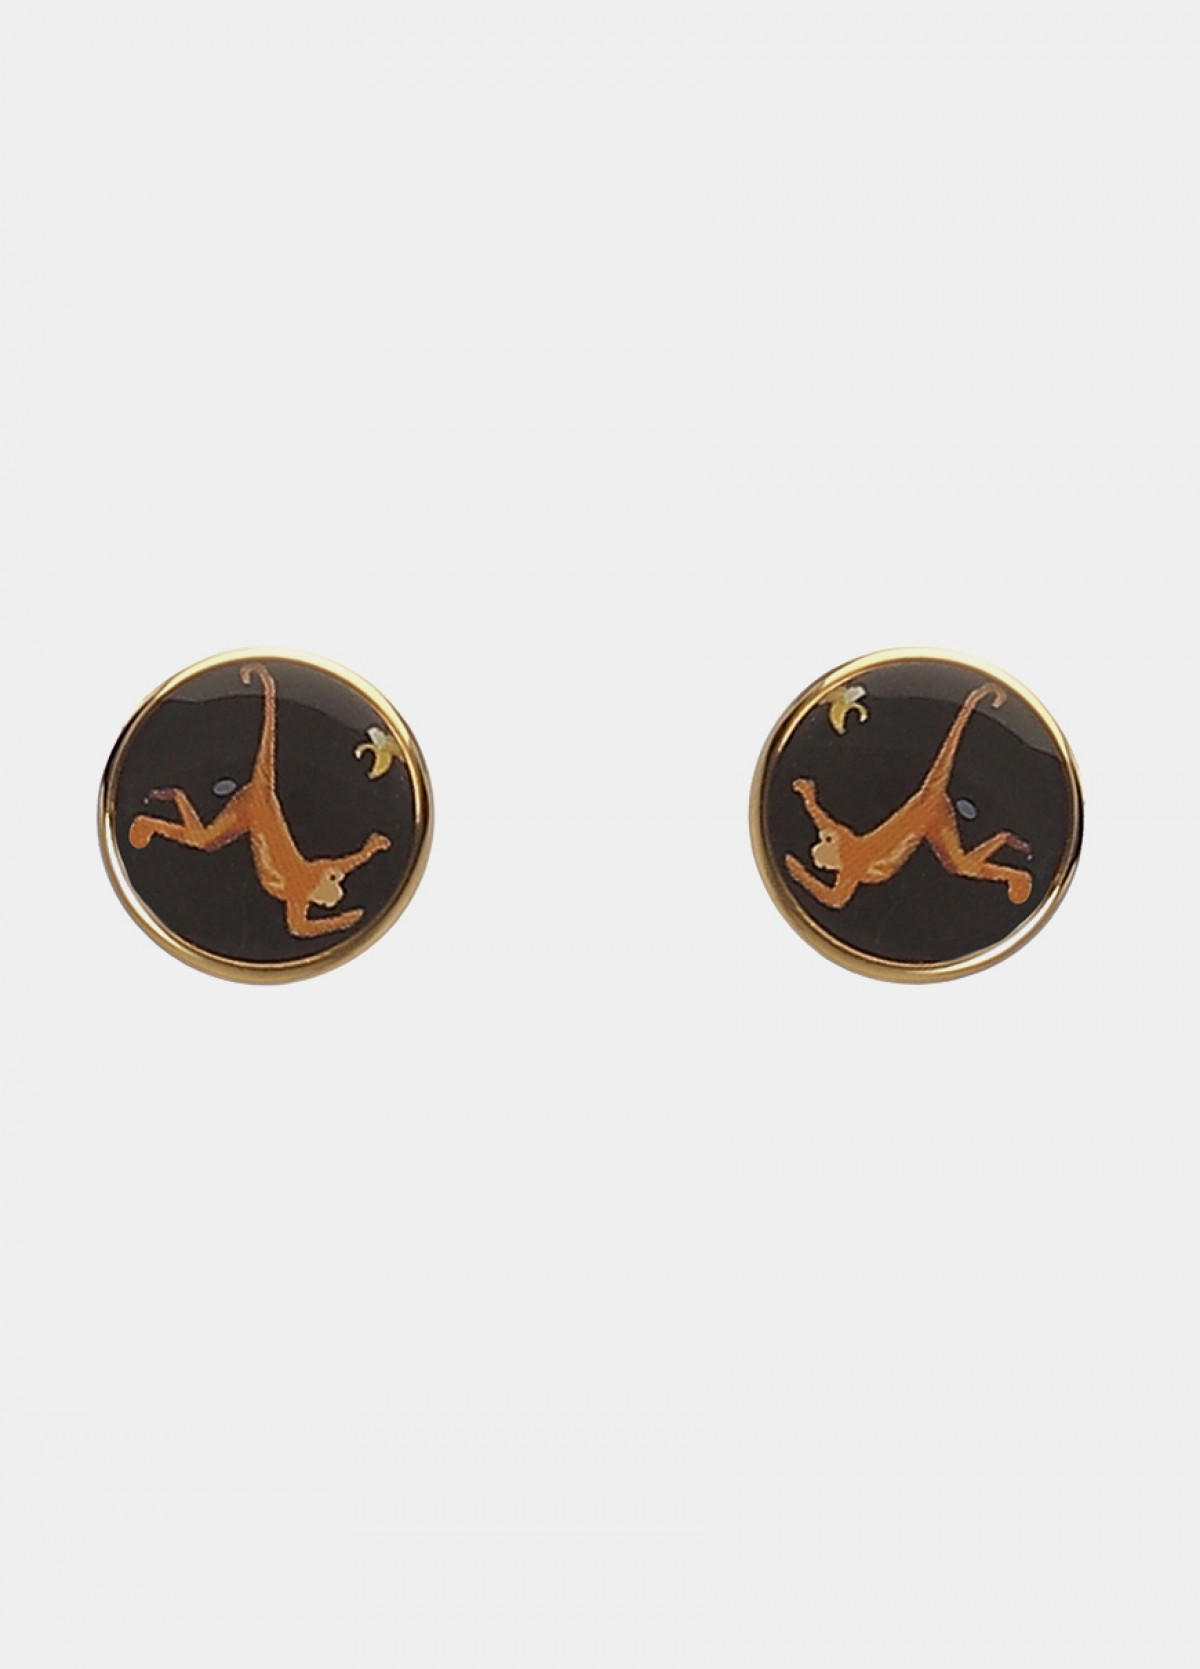 Black Metal Cufflinks